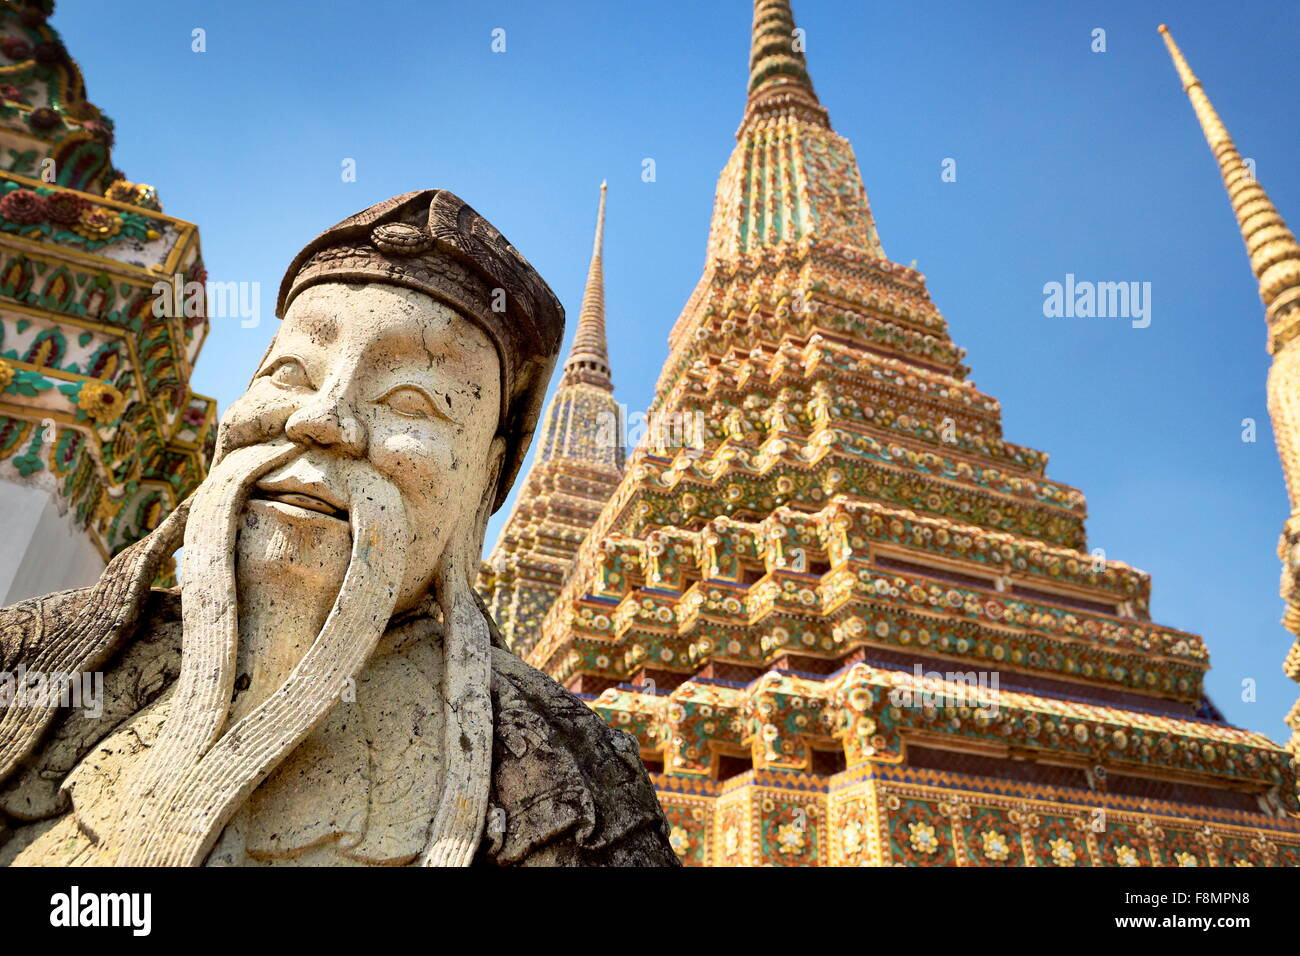 Thaïlande - Bangkok, Wat Phra Kaeo, Temple Grand Palais, statue de pierre Photo Stock